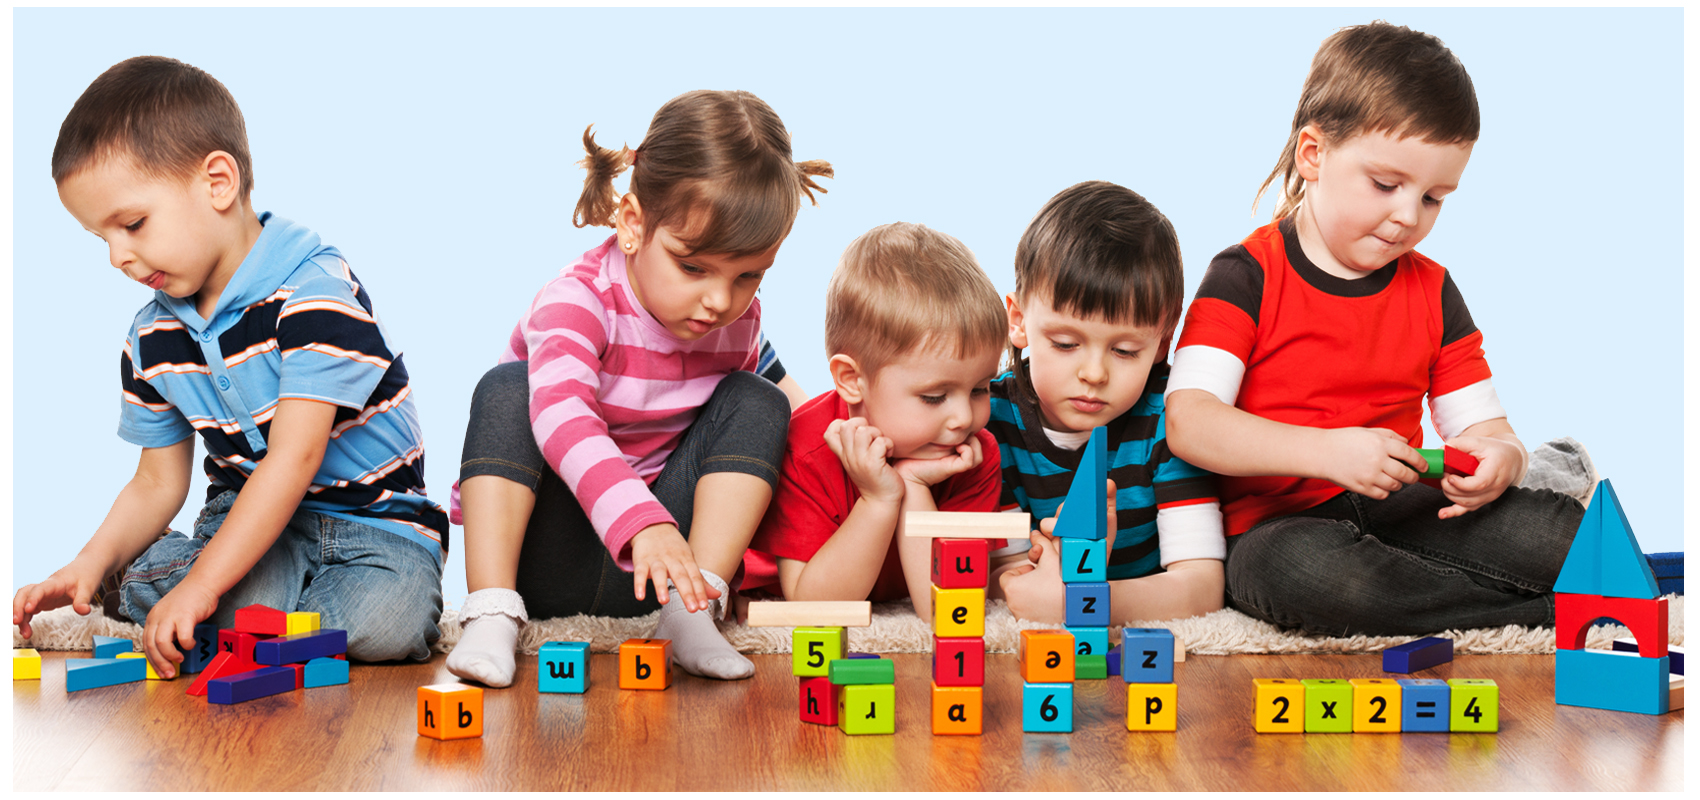 Does Pre-K Make a Difference? | Splash Math Blog